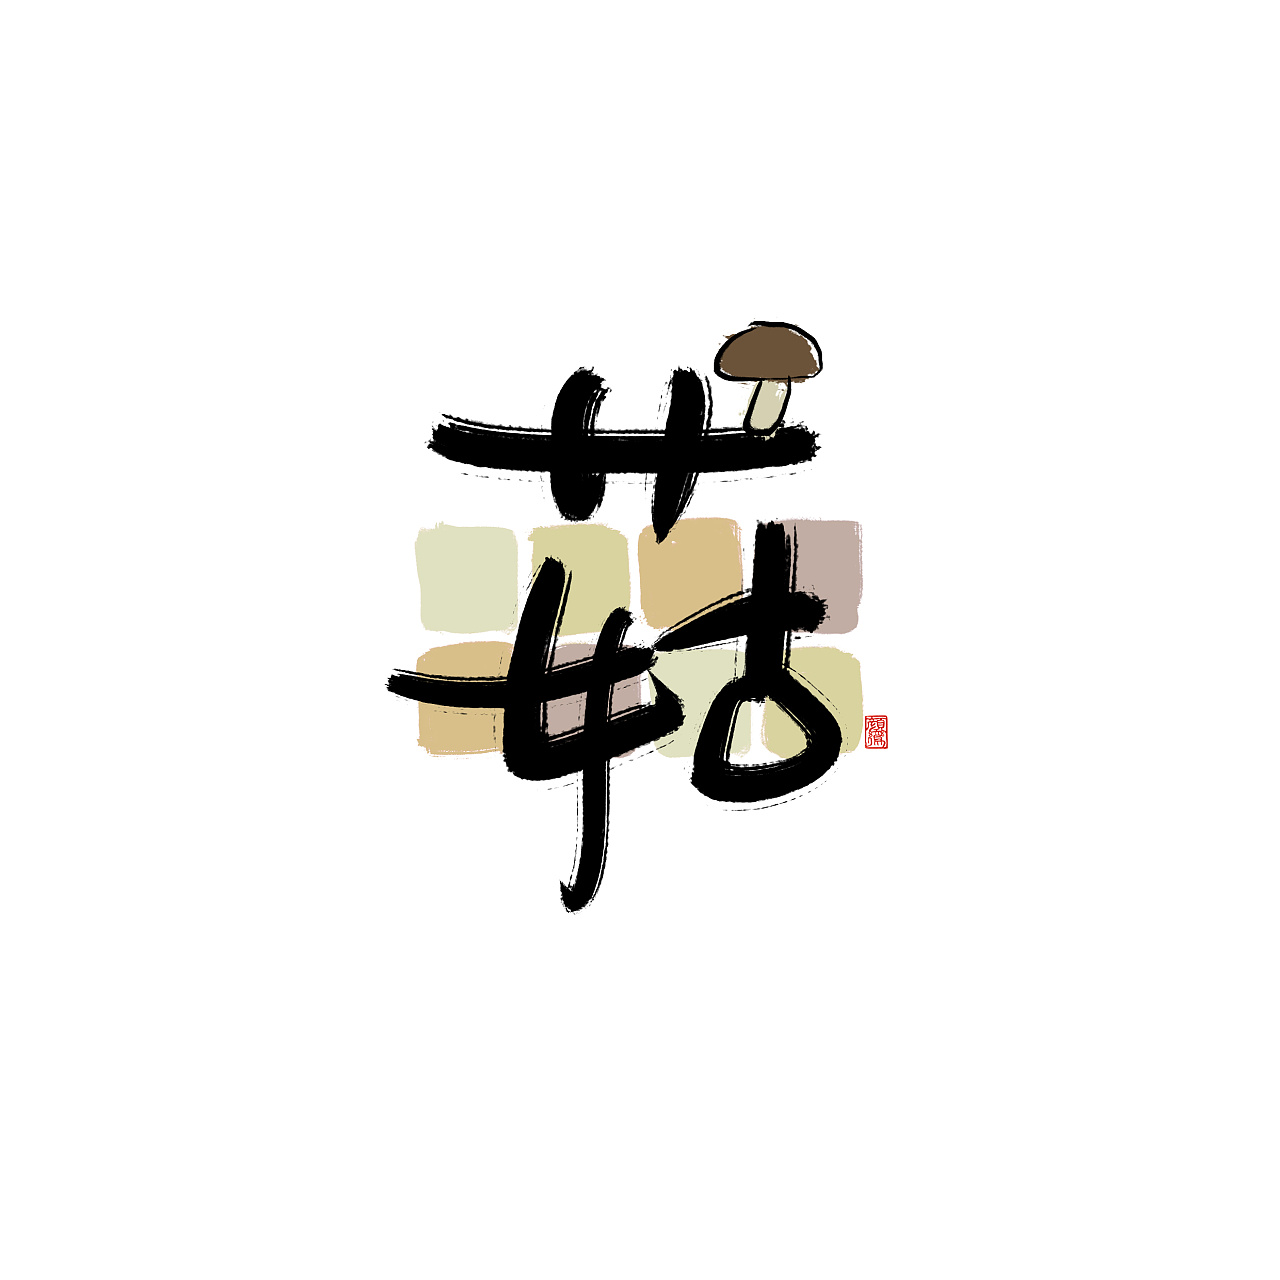 22P Chinese traditional calligraphy brush calligraphy font style appreciation #.658